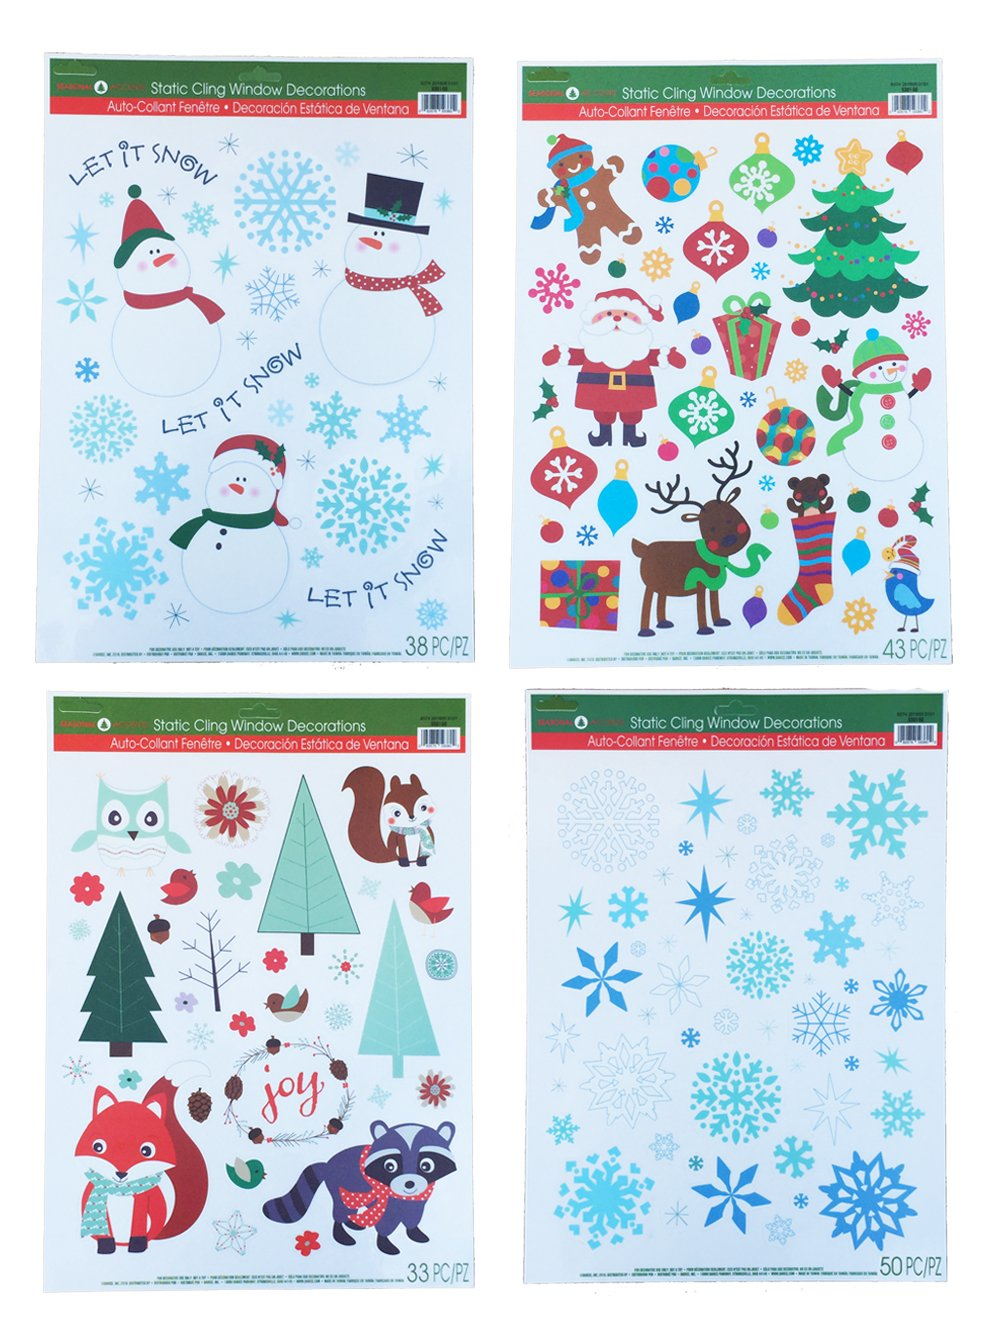 Christmas Static Window Cling Decorations - 4 Large Sheet Sets Featuring Santa, Snowmen, Snowflakes, Gingerbread Men, Reindeer and More Holiday Designs